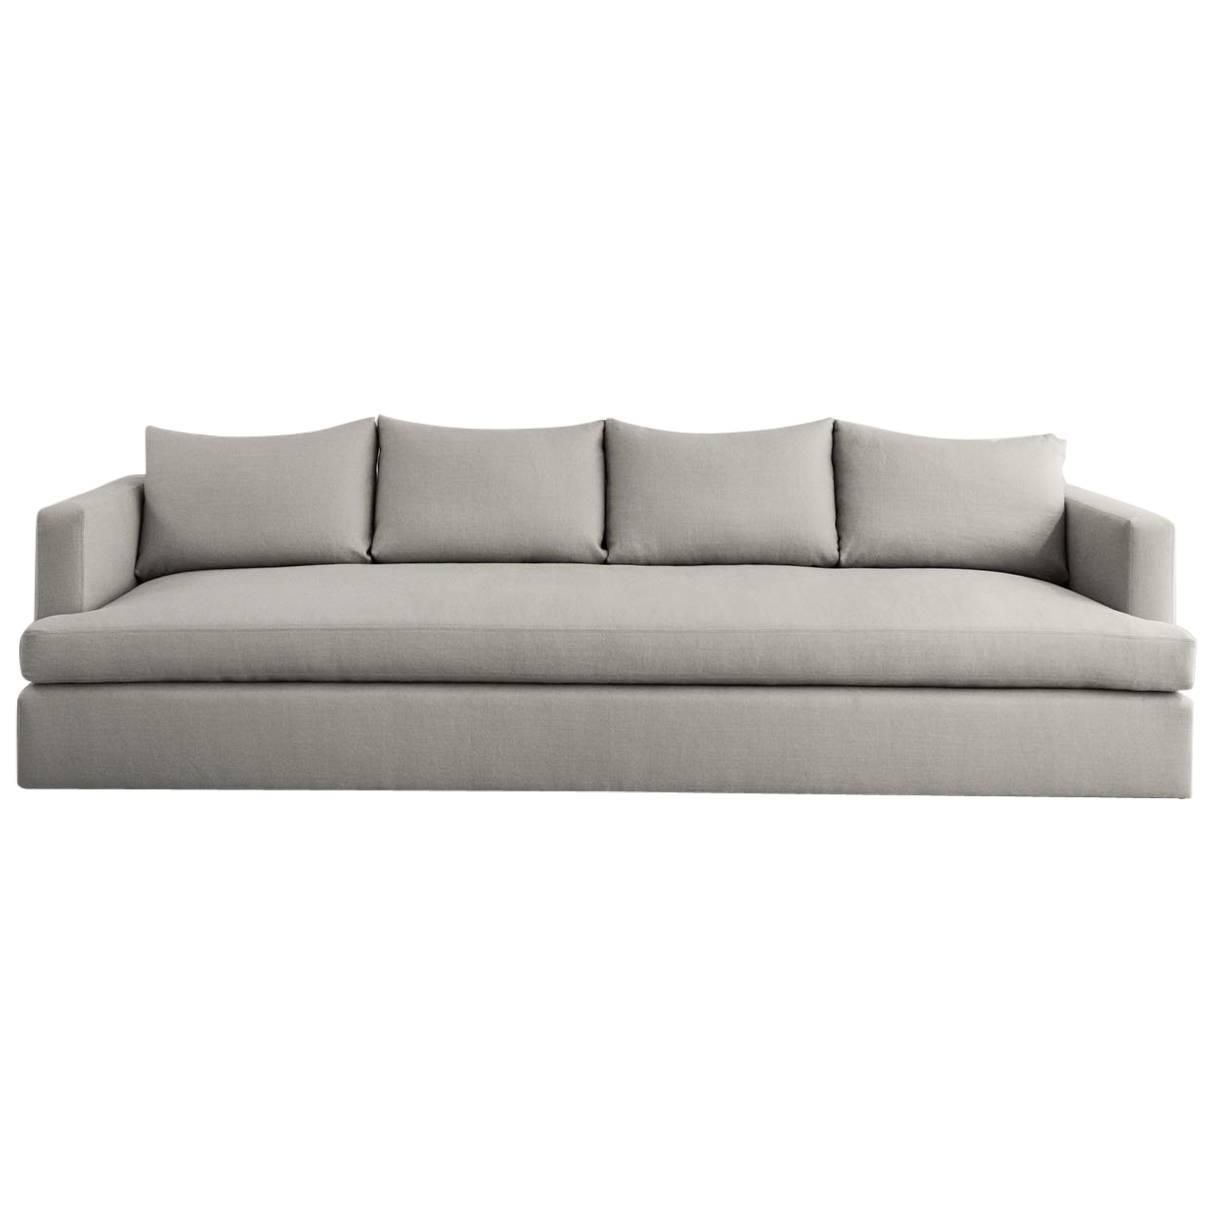 chelsea square sofa correct pillow size for contemporary custom and made to order by dmitriy amp co